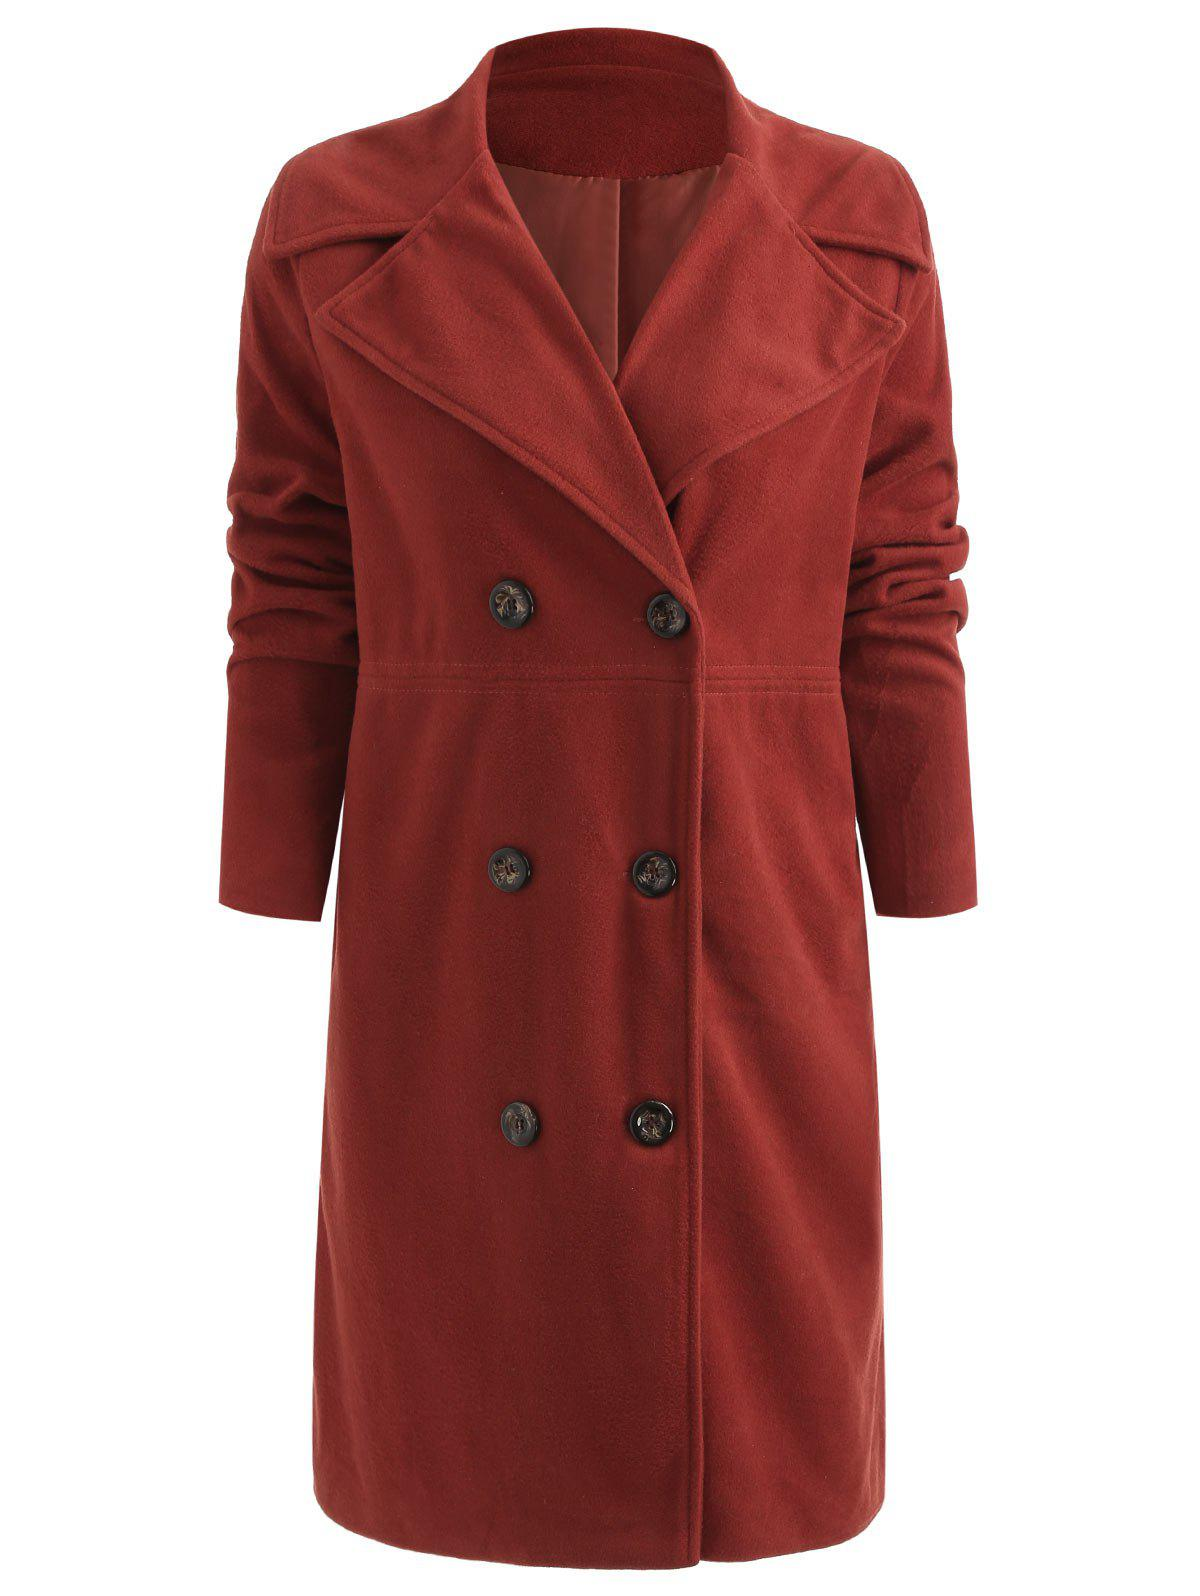 New Double Breasted Lapel Long Winter Coat